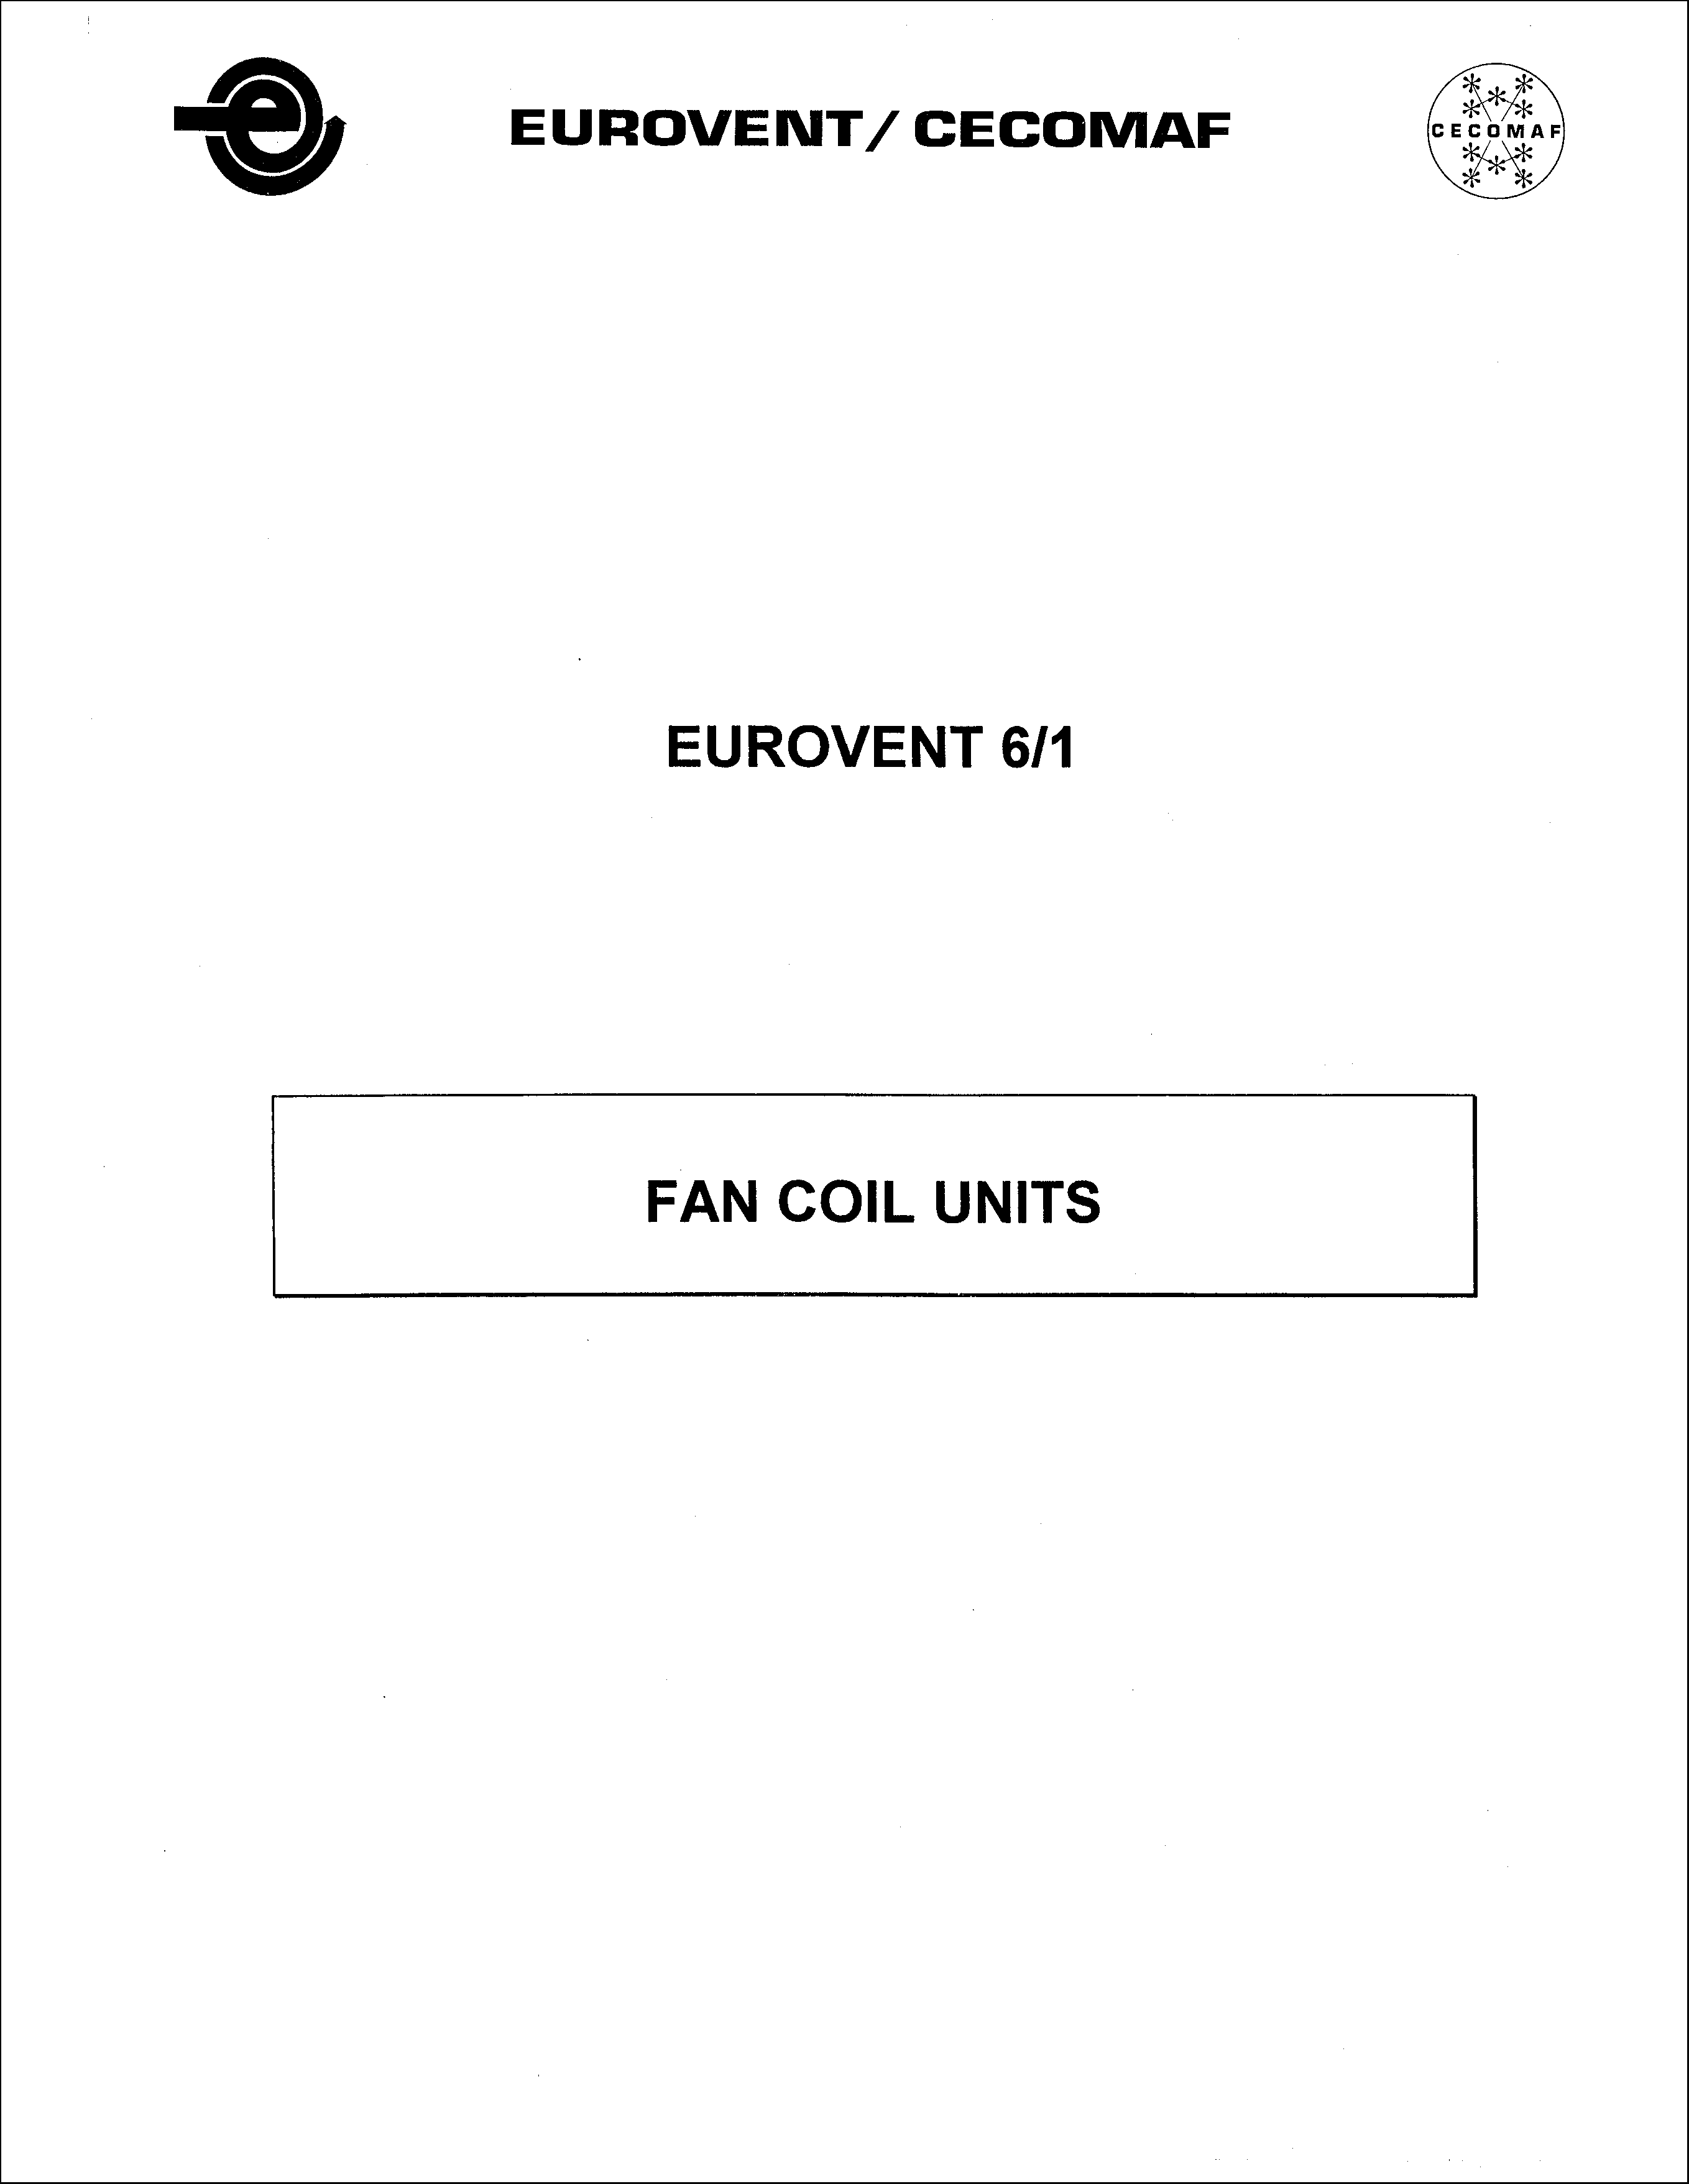 1994 - Fan Coil Units: Definition, Construction, Application and Modification